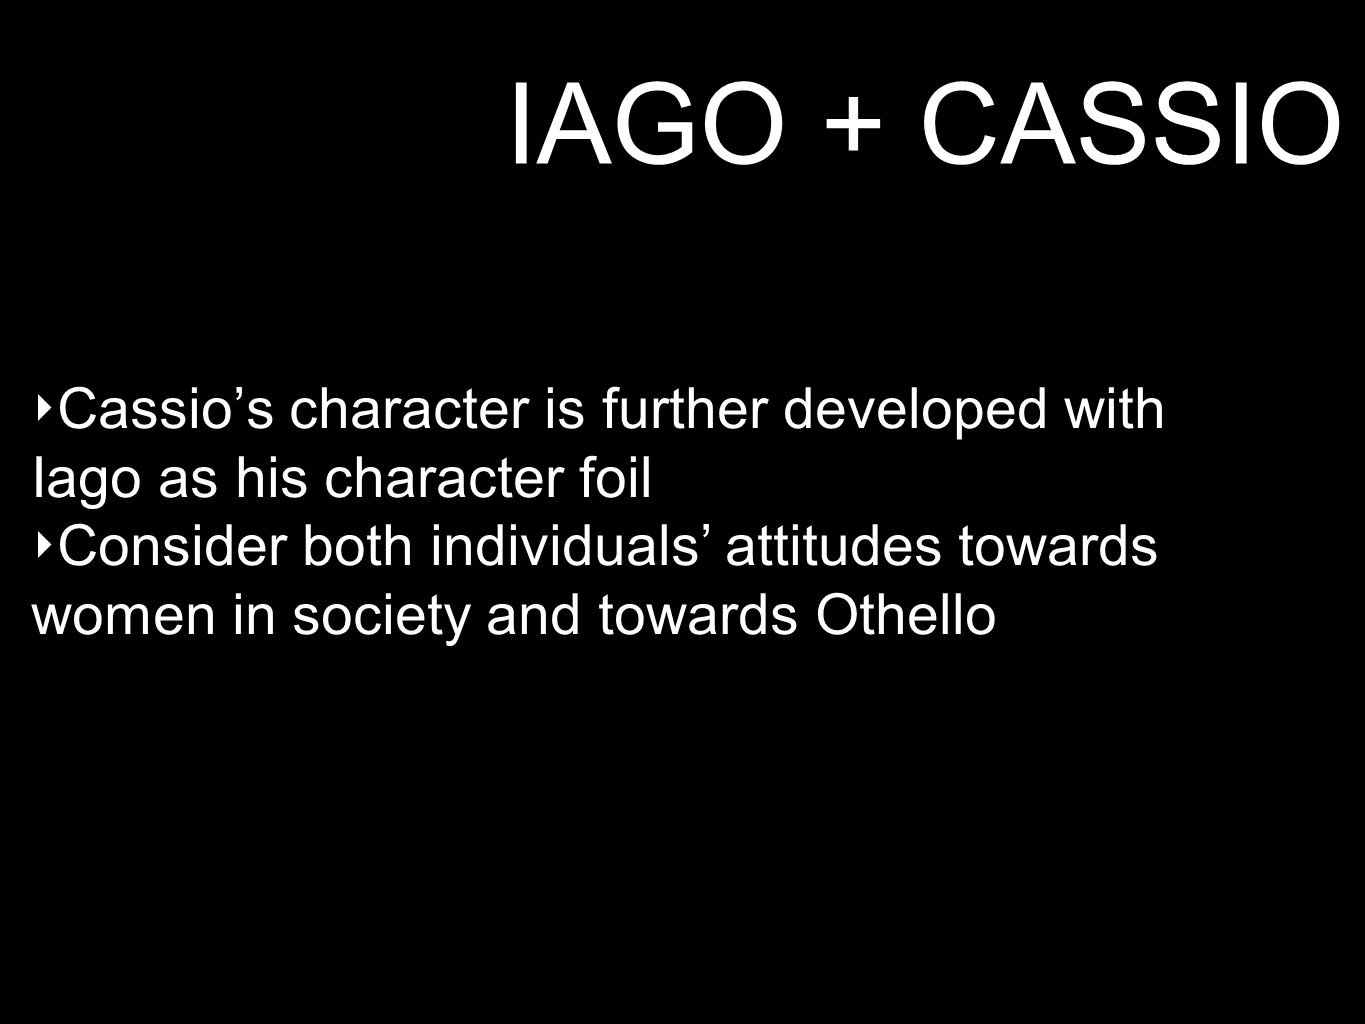 othello centers around iagos character Othello essay edited copy: iago's acts of character manipulation 1 othello essay- edited copy iago's strategic acts of character manipulation wh auden once said, there is more than meets the eye, suggesting that there may be a hidden or deeper meaning behind a person's initial appearance.